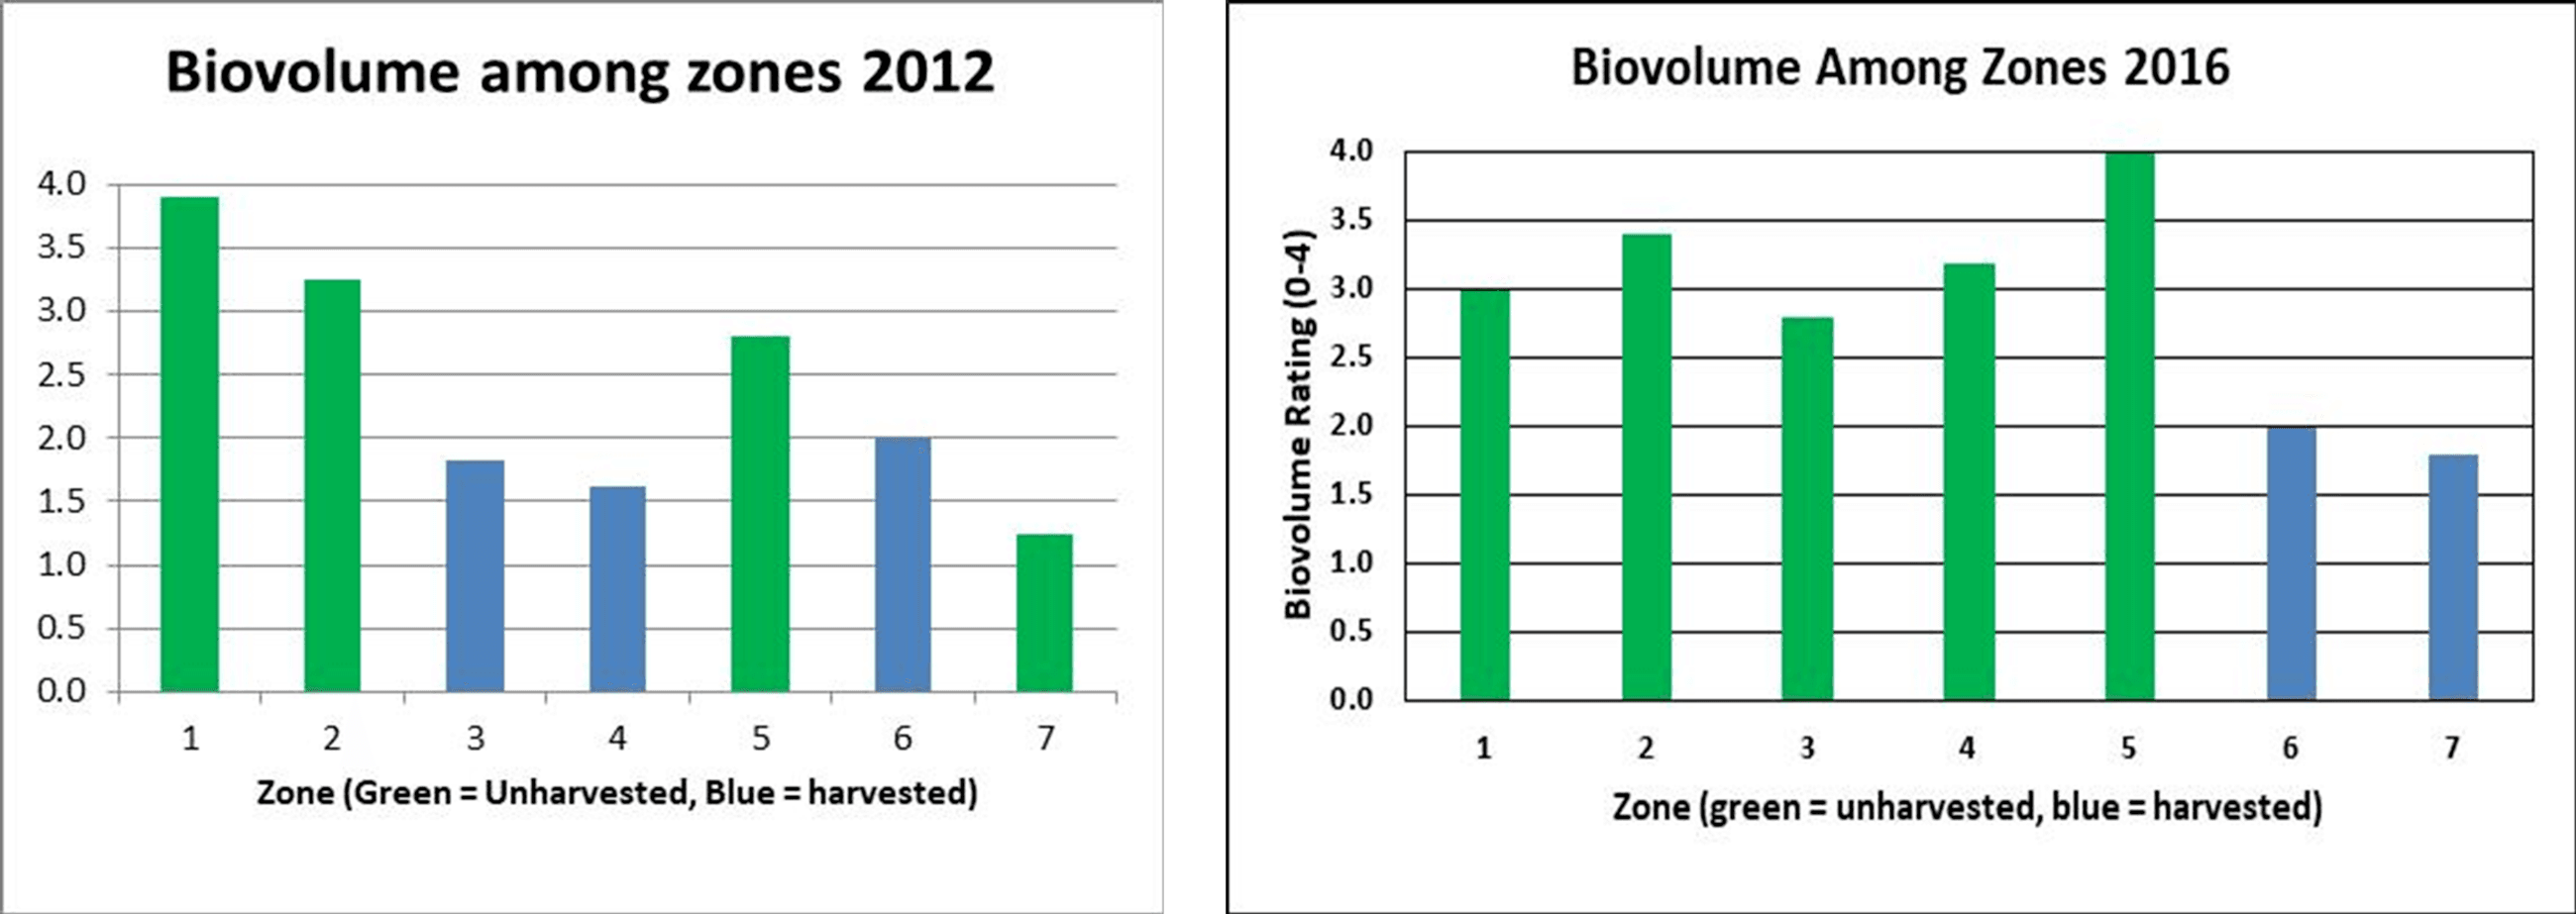 Biovolume Graphs 2012 and 2016